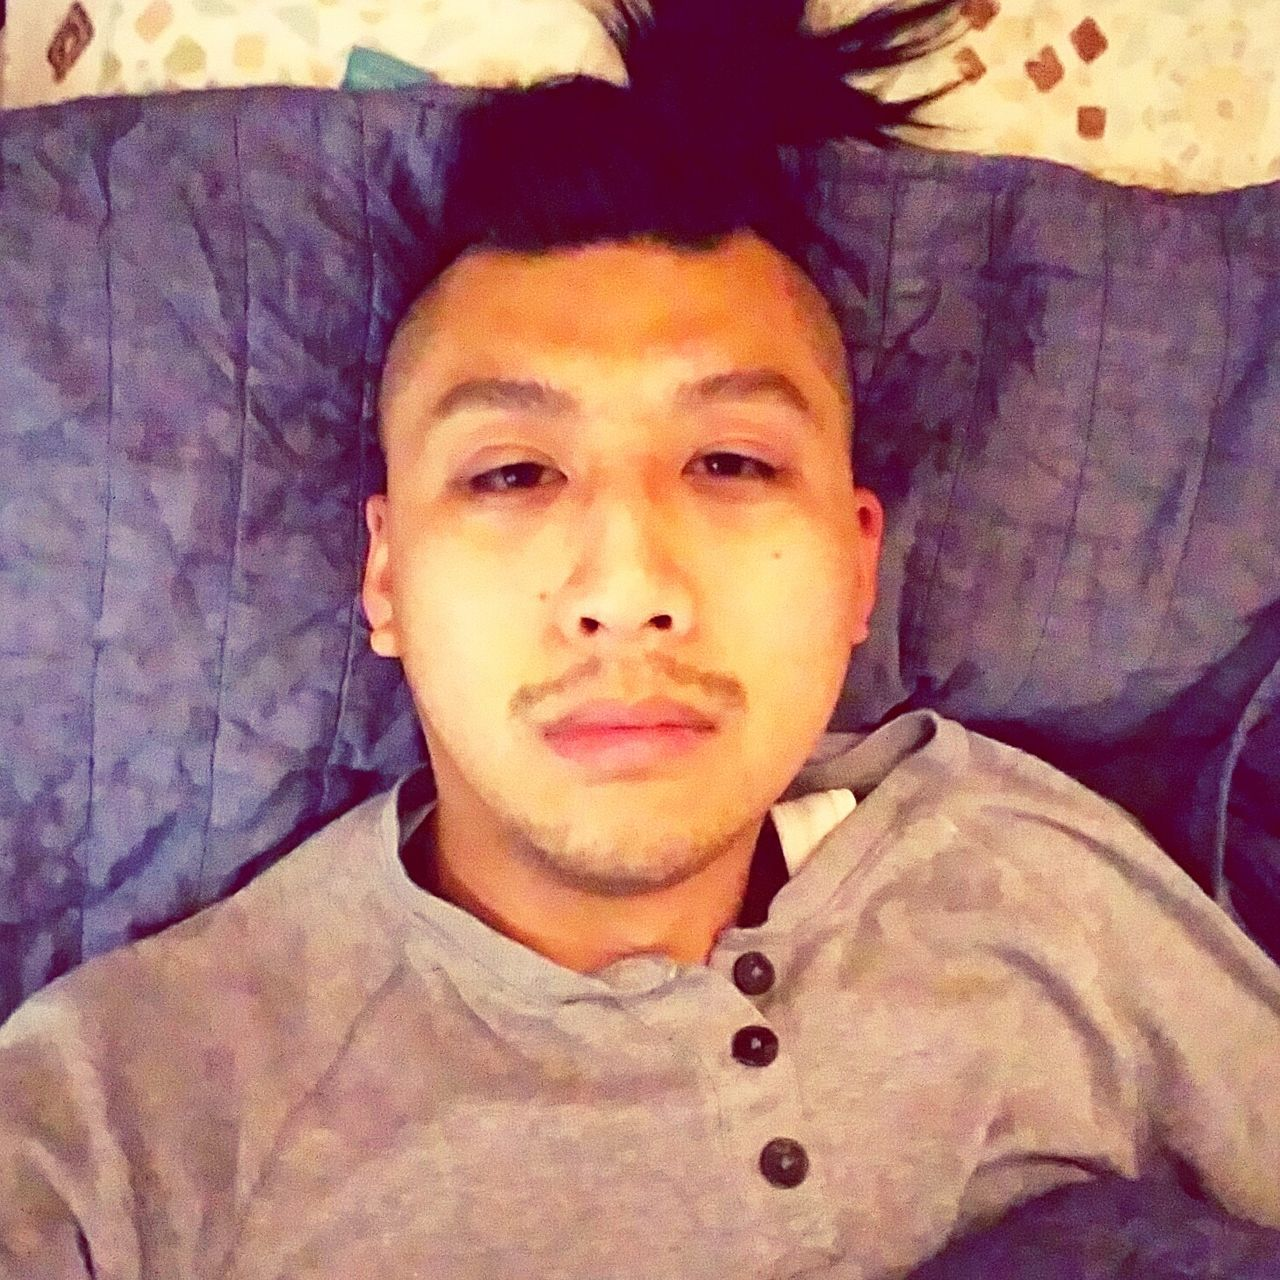 The lazy morning, wake up and open your eyes to think, what will i be today look. Real People Close-up One Young Man Only Indoors  Headshot Modeling Angles Growth Selfıe Asian  Amateurmodelling Men Mustache Lips Handsome Menhairstyle Mensfashion Questioning